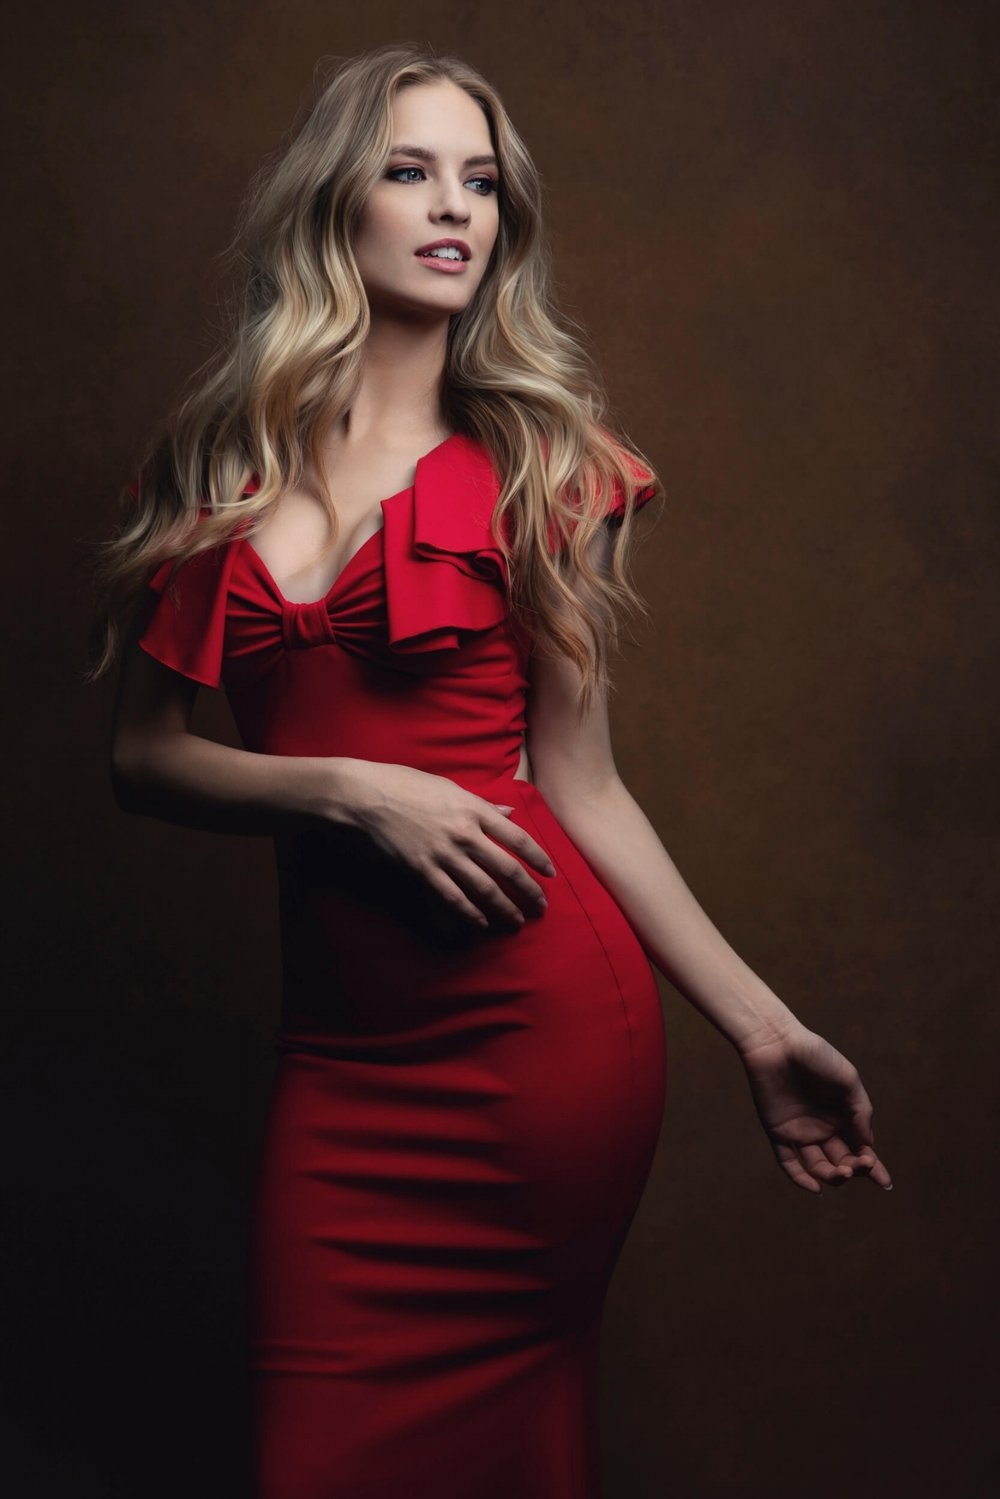 Beautiful blond girl Red-dress portraiture Starnberg